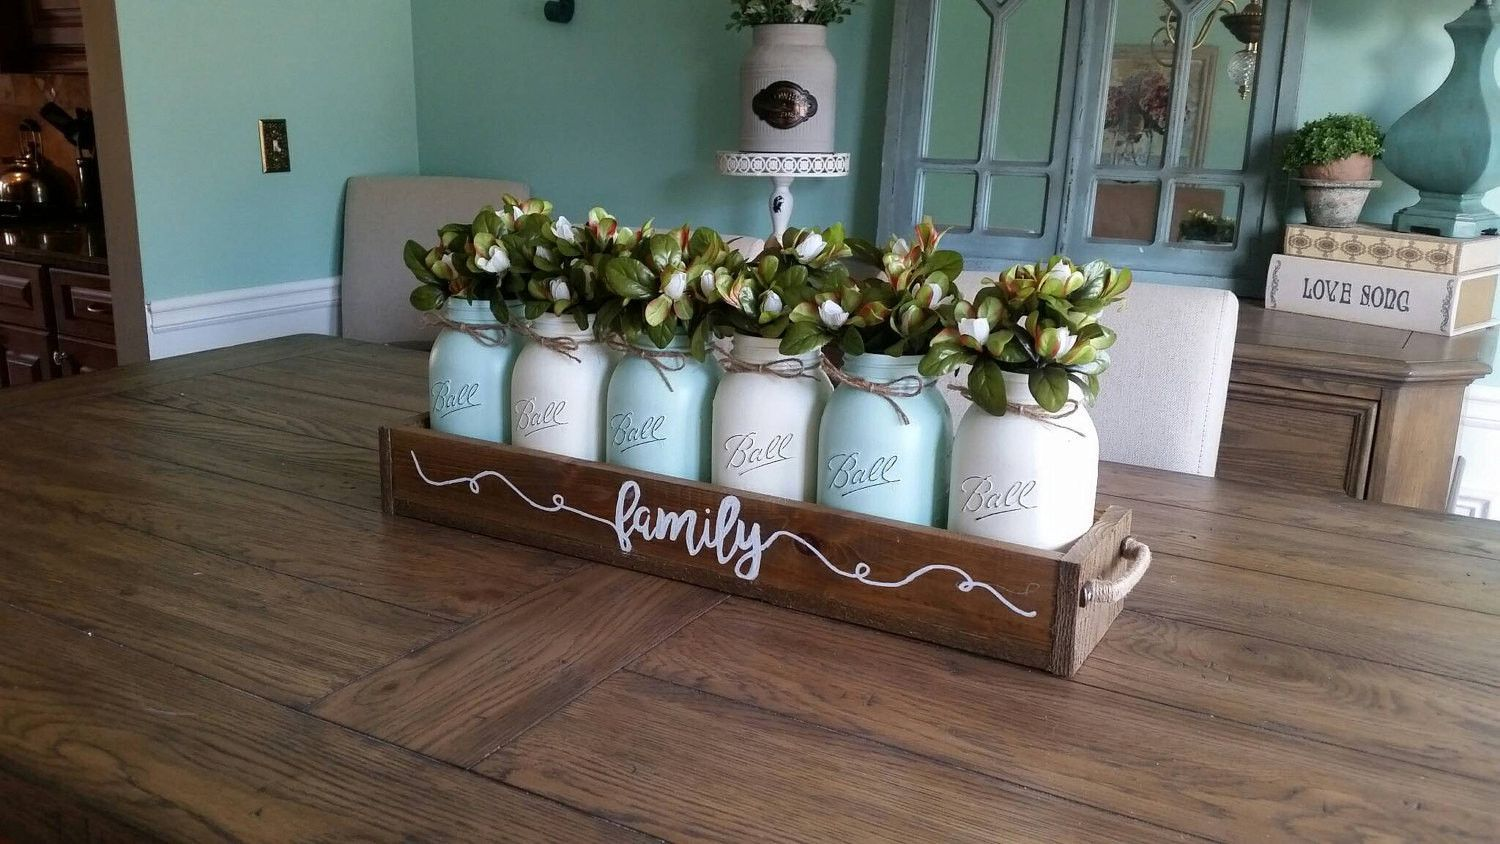 Mason Jar Table Decor Mason Jar Centerpiece Rustic Home Decor Table Decor Dining Room Wedding C Spring Table Decor Spring Home Decor Cheap Home Decor